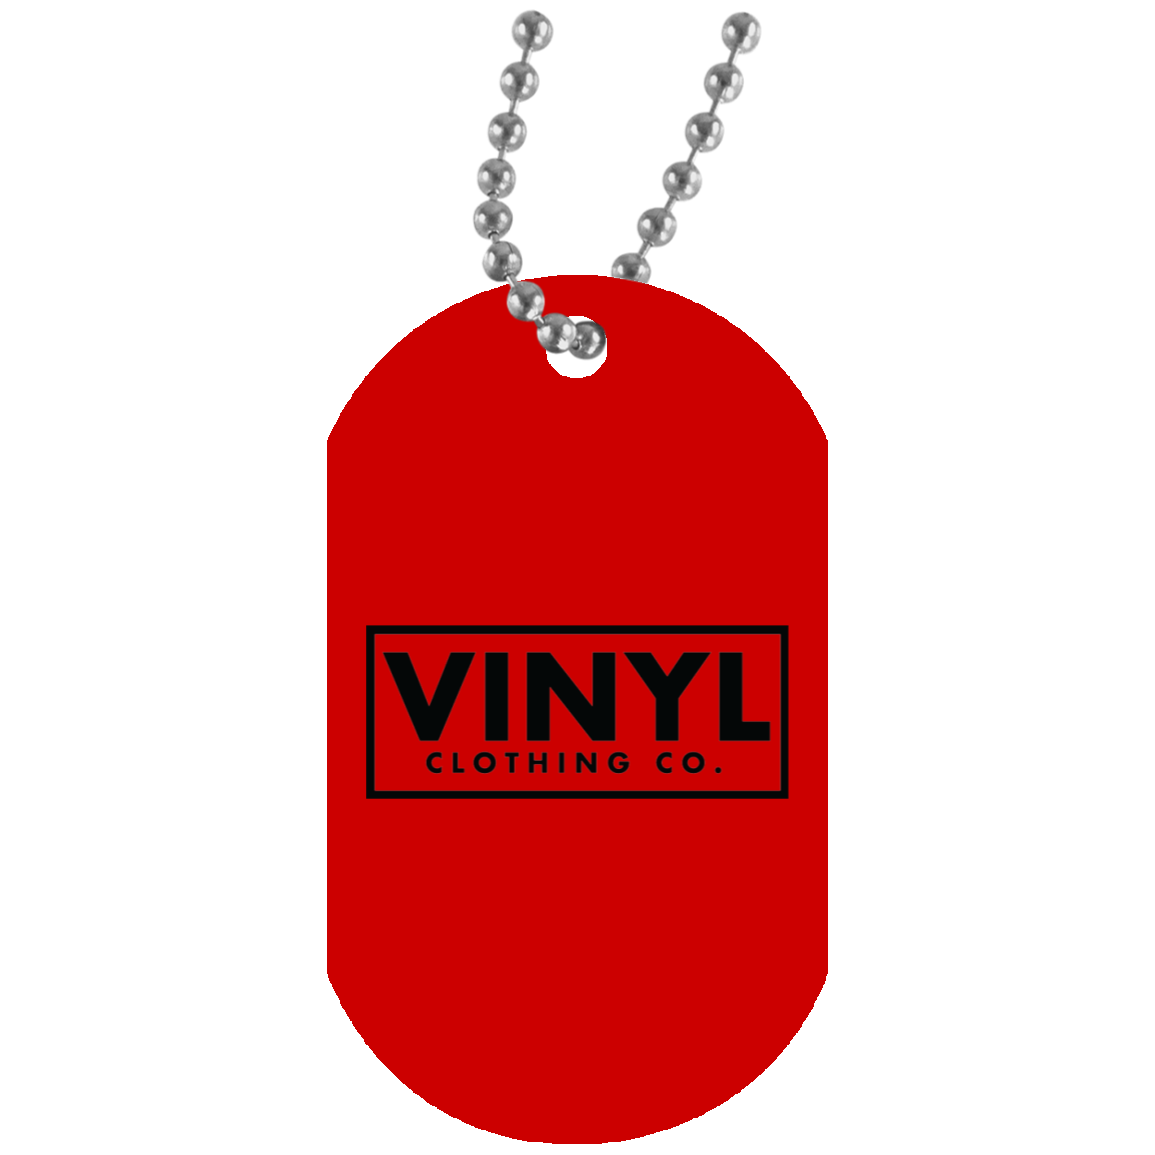 Vinyl Clothing Co. Dog Tag